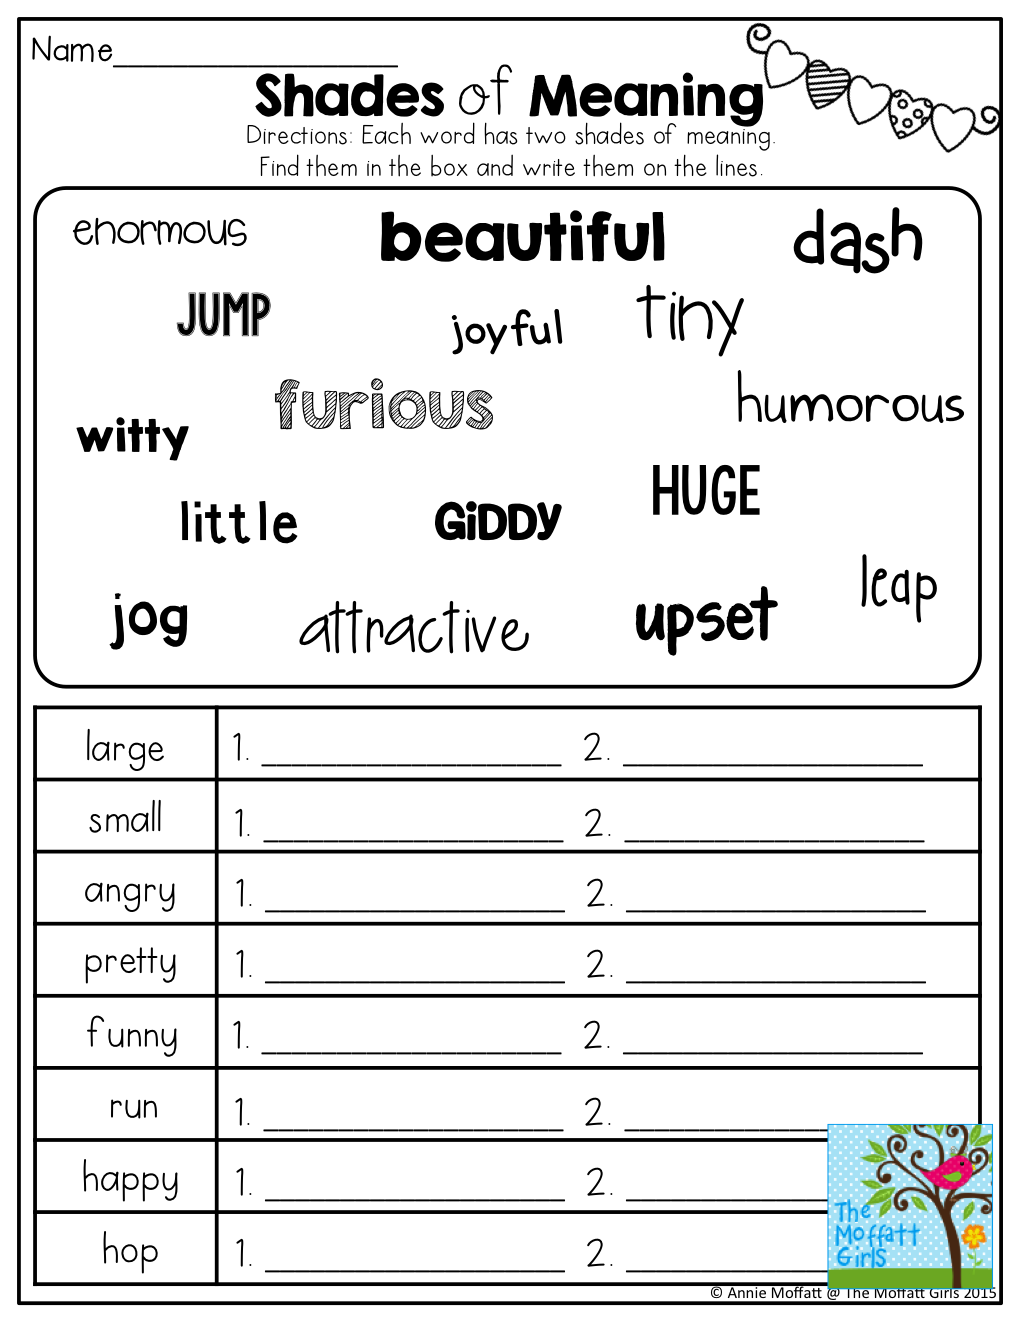 hight resolution of printables #meaning #shades #other #great #tons #ofShades of Meaning! TONS  of other great printables!   Text auf deutsch